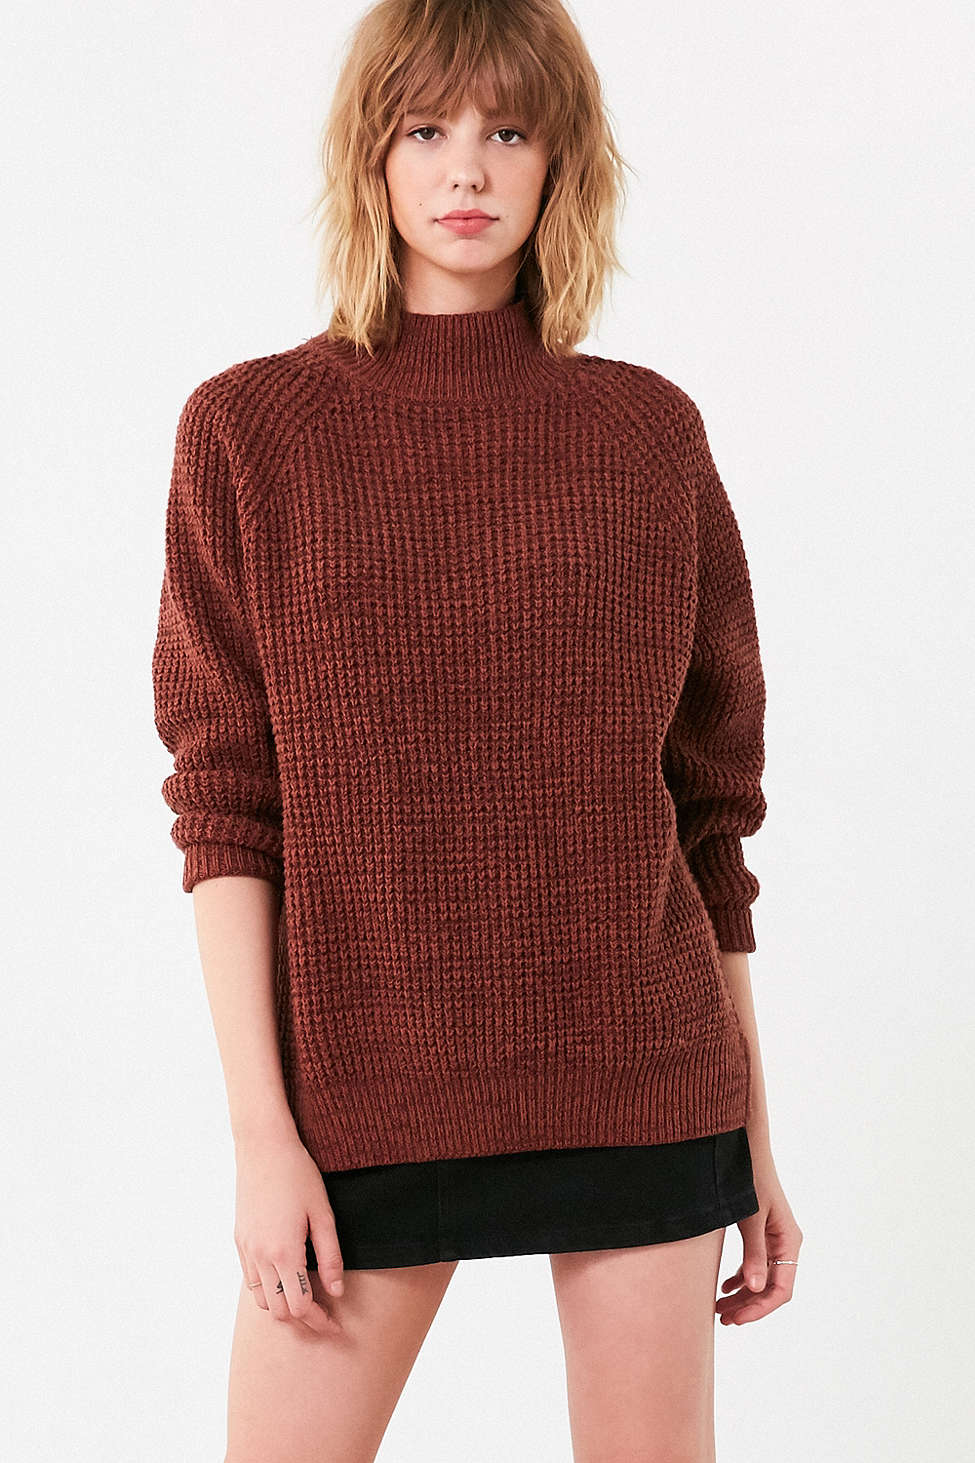 Best Womens Turtlenecks, Turtlenecks For Fall Layering